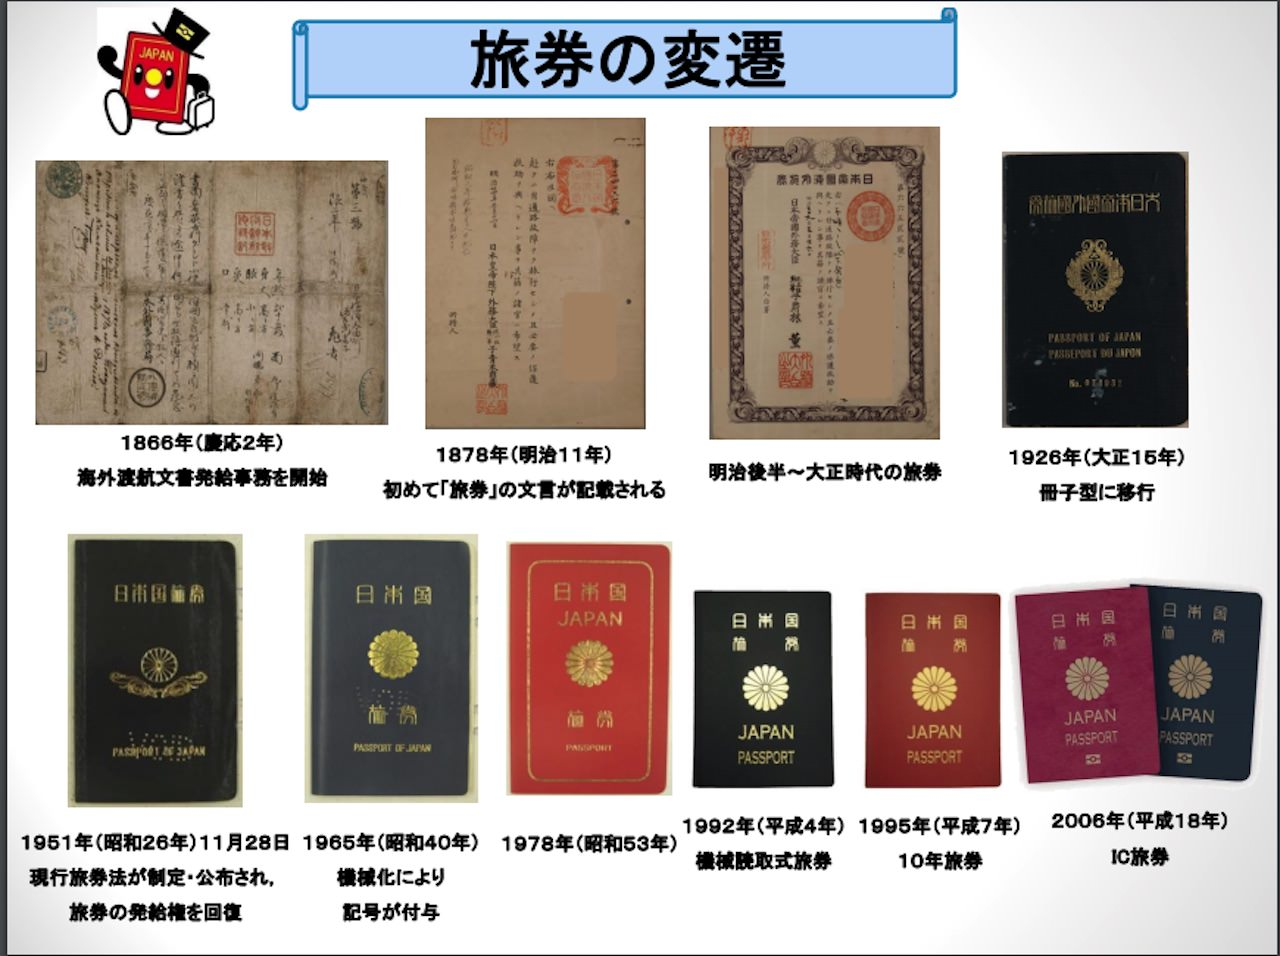 Gaimusho passport